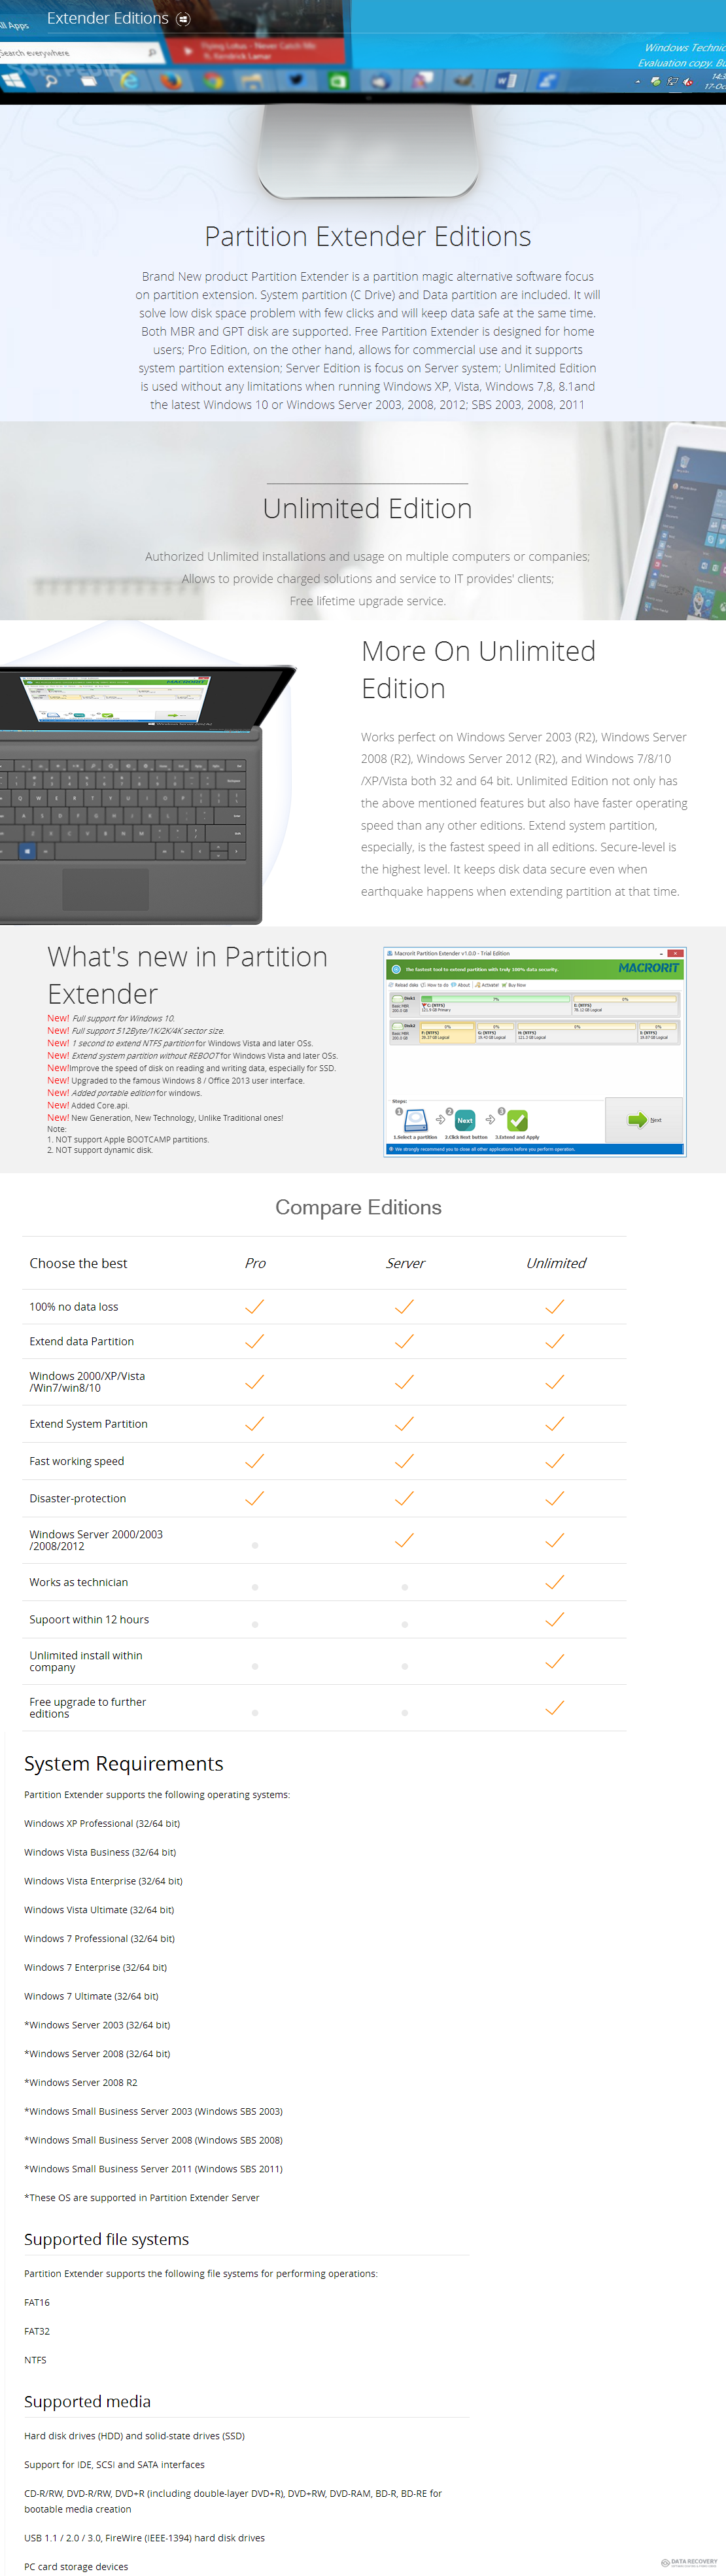 Macrorit® Partition Extender Unlimited Edition Discount Coupon Code